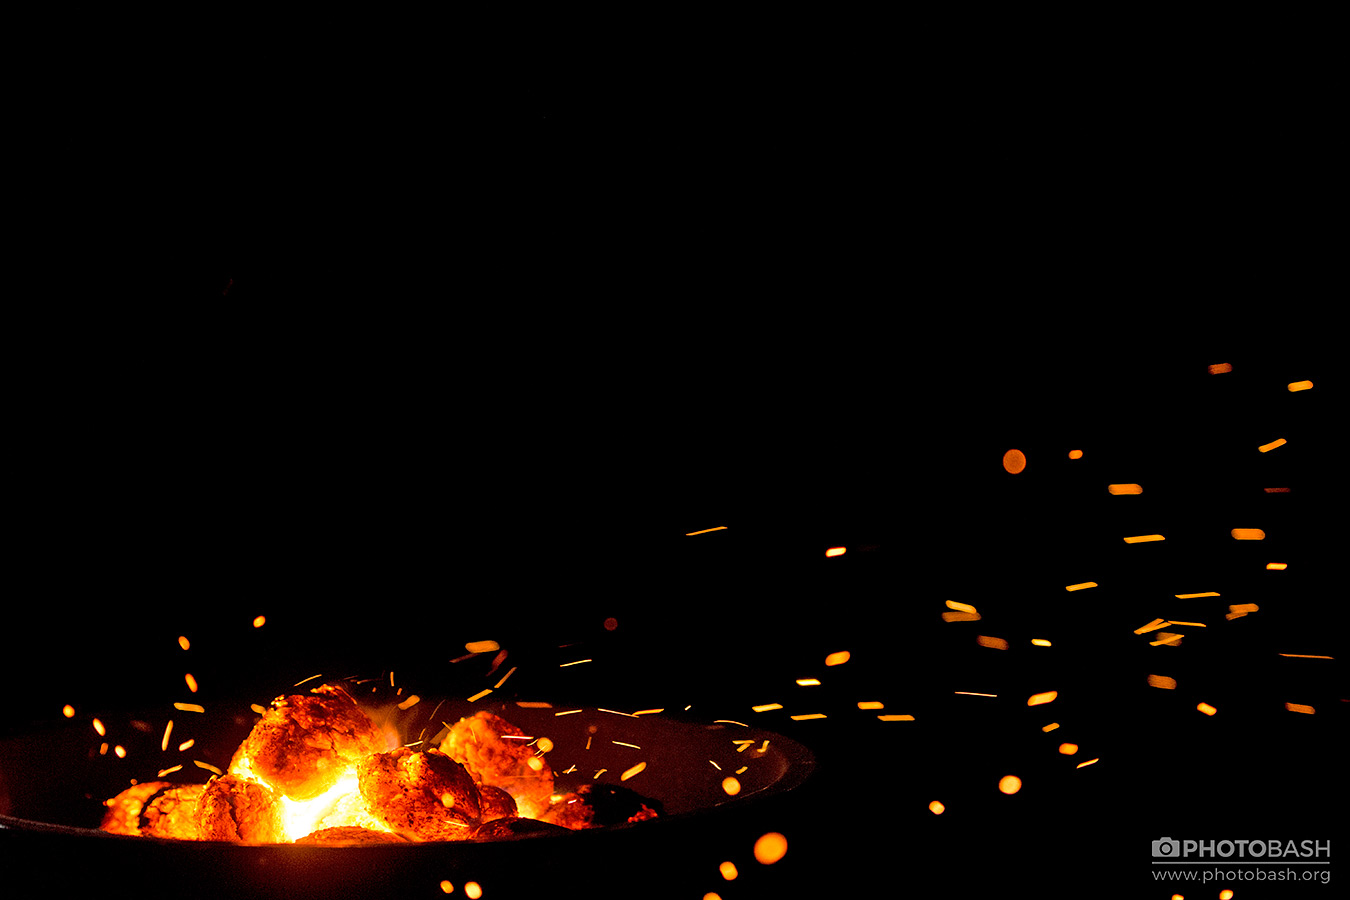 Embers-Sparks-Fire-Particles-Black.jpg